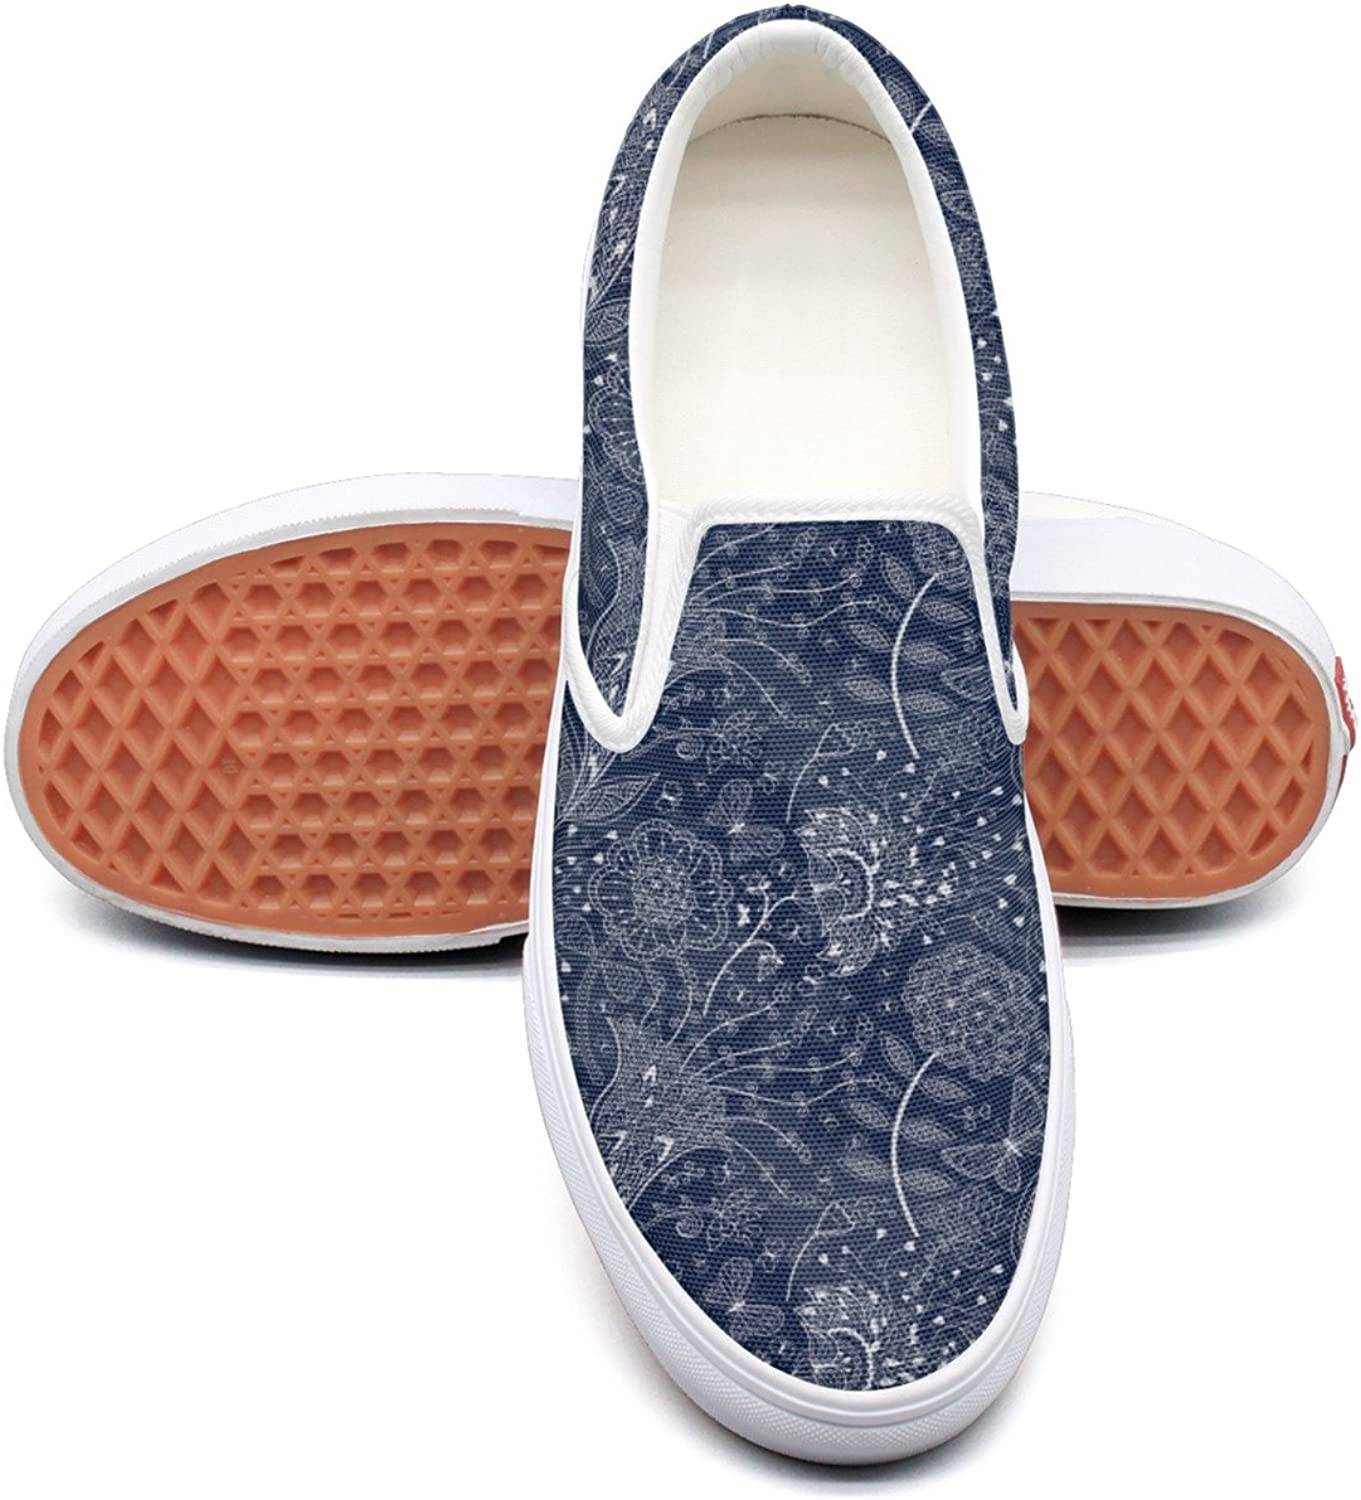 Hjkggd fgfds Casual Marigold Flowers On A Dark bluee Background Young Women Canvas shoes